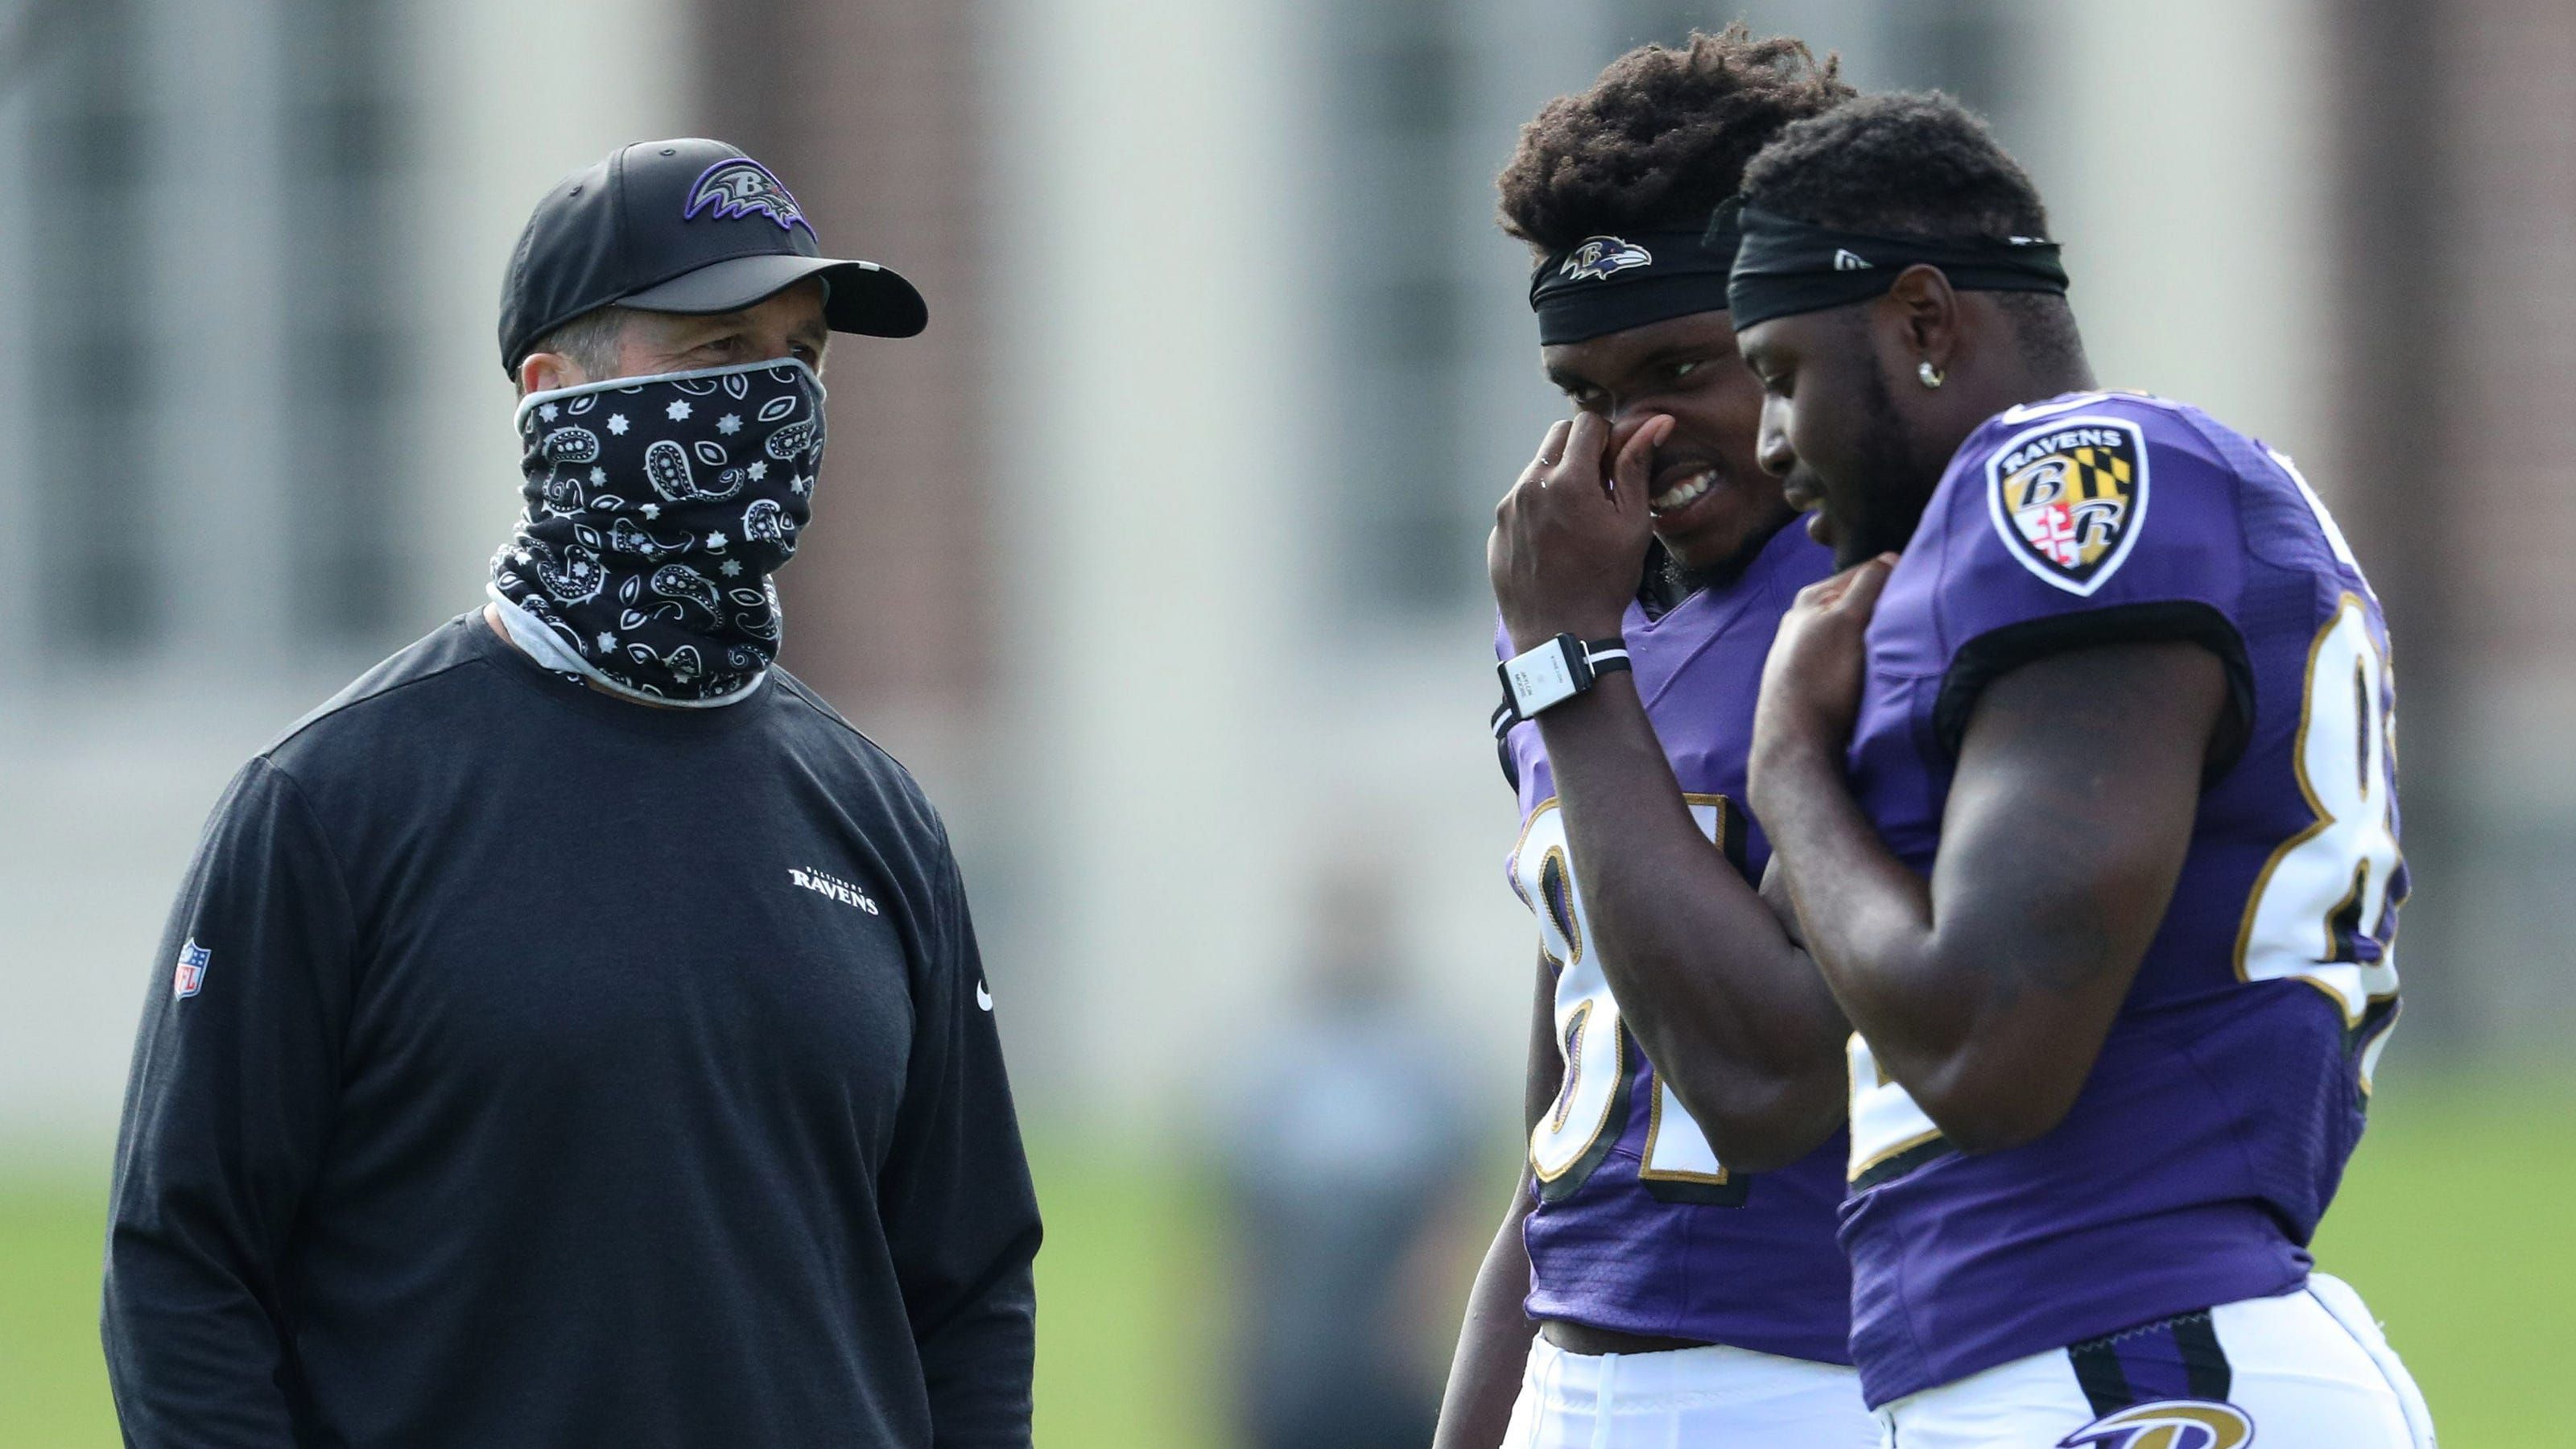 Opinion Ravens show guts with bold call to action